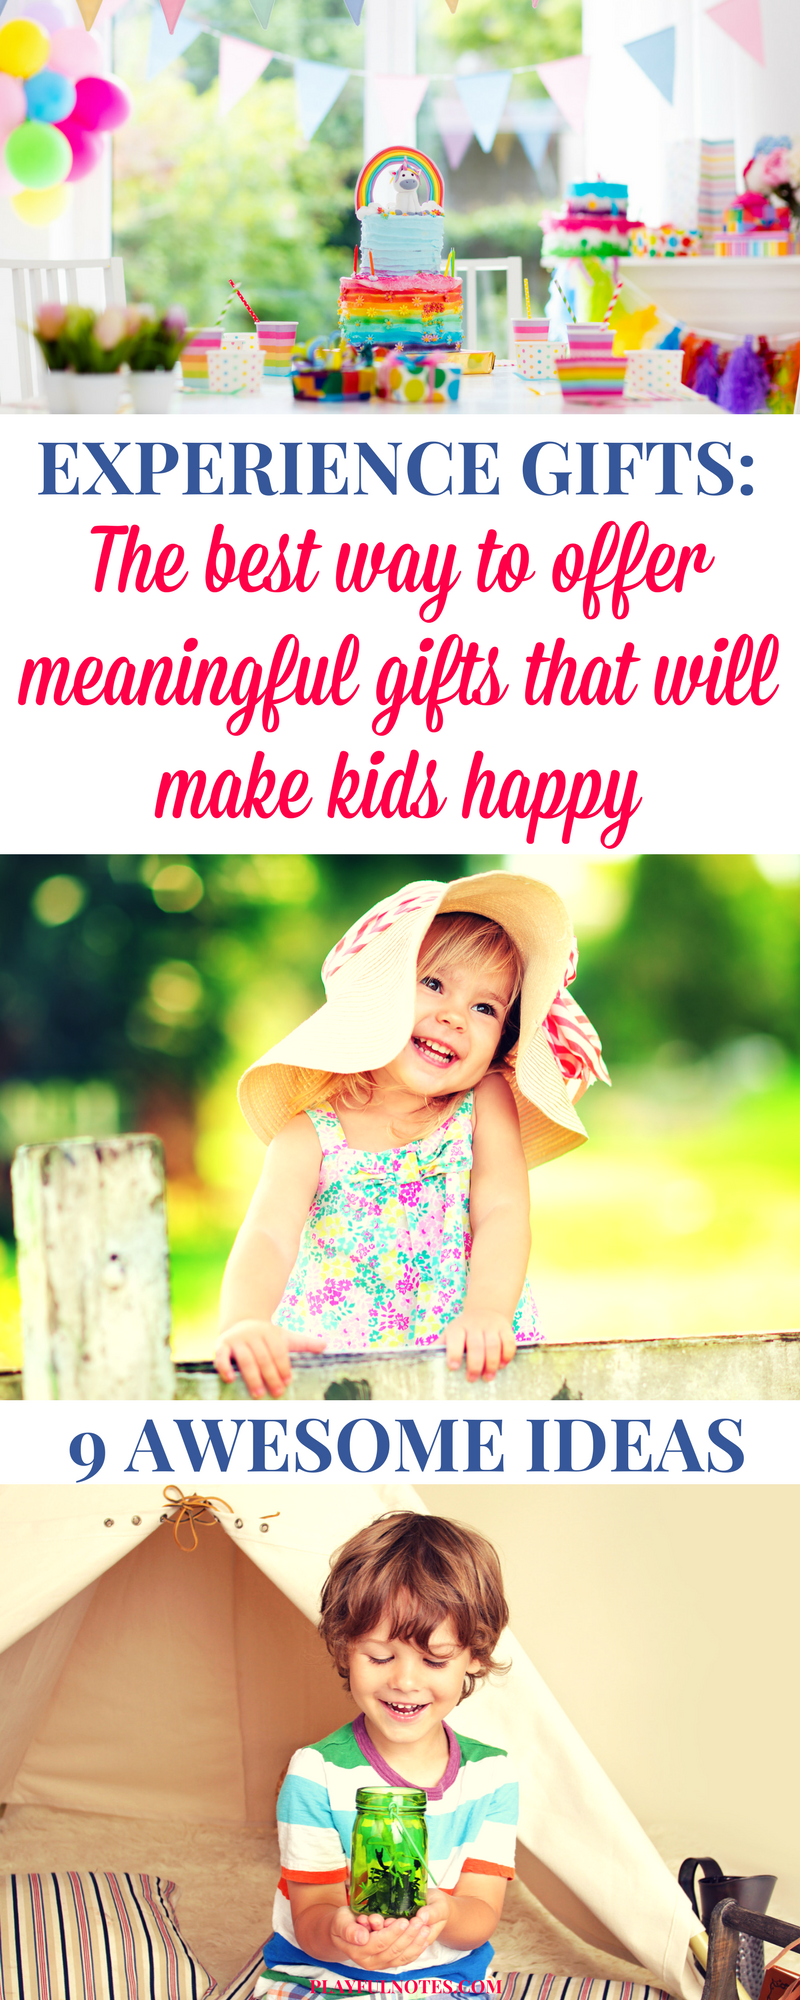 Experience Gifts The Best Way To Offer Meaningful Gifts That Will Make Kids Happy Experience Gifts Christmas Experiences Meaningful Gifts